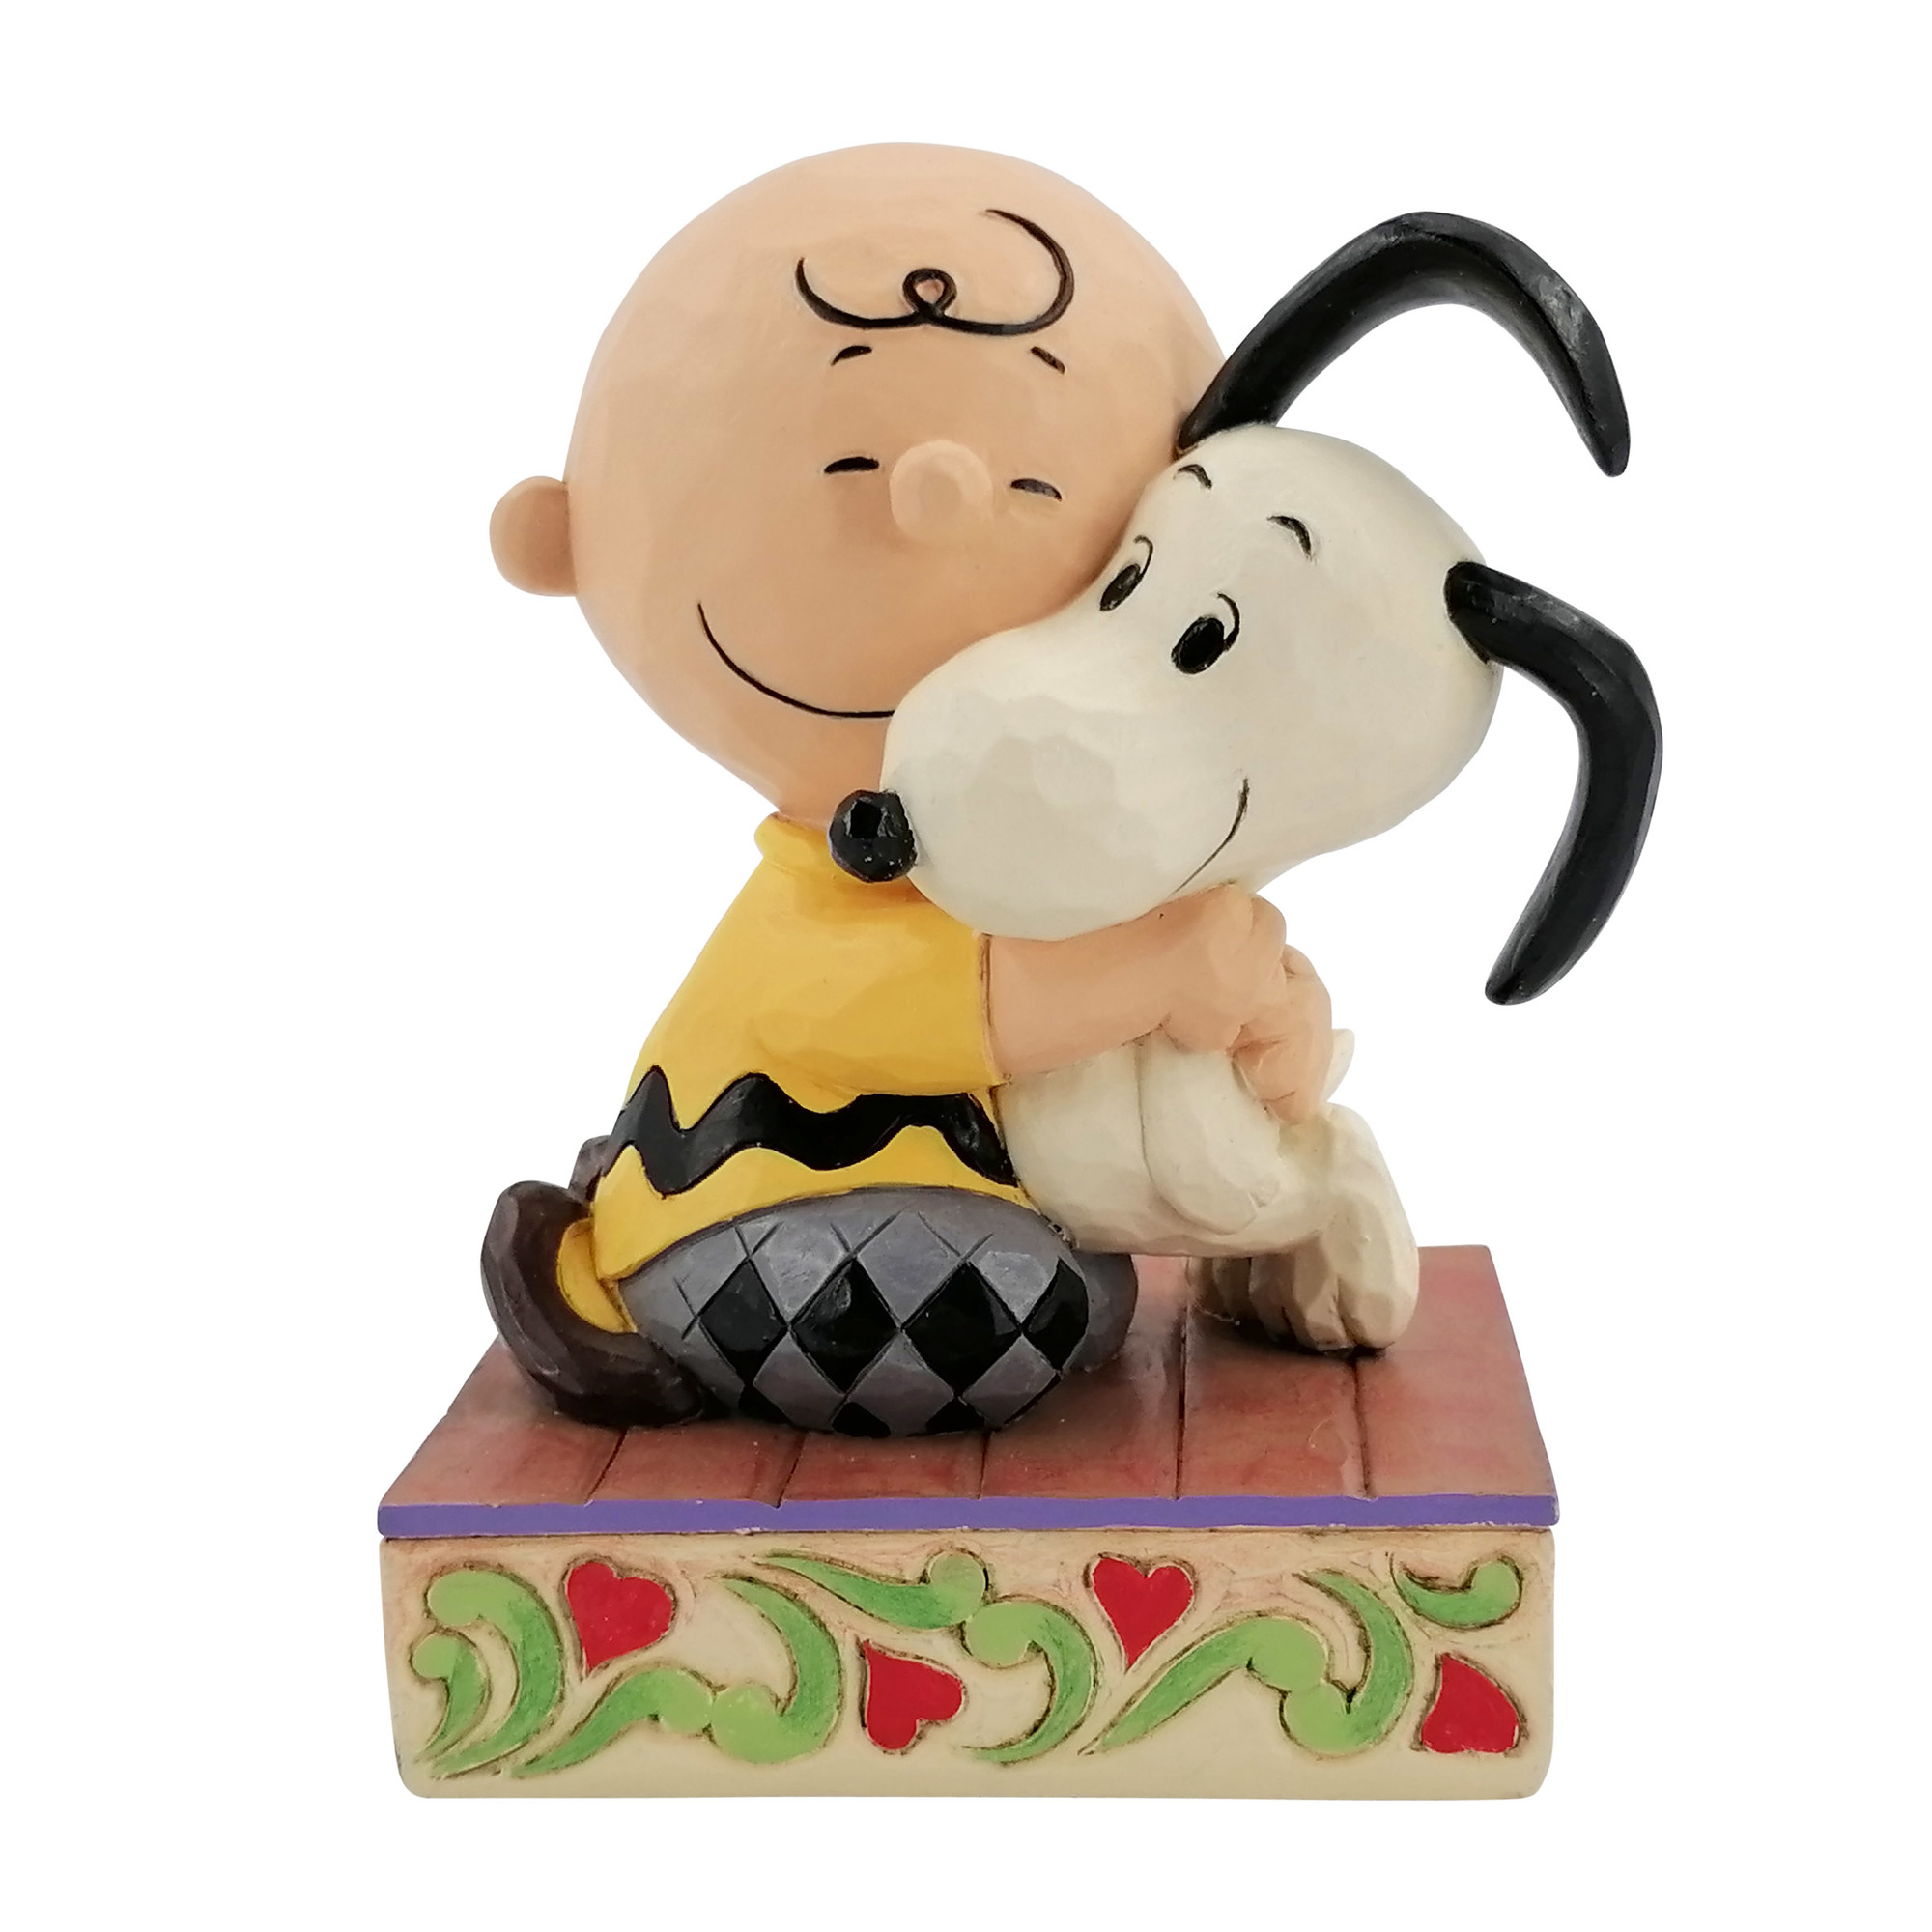 6007936 Charlie Brown Hugging Snoopy